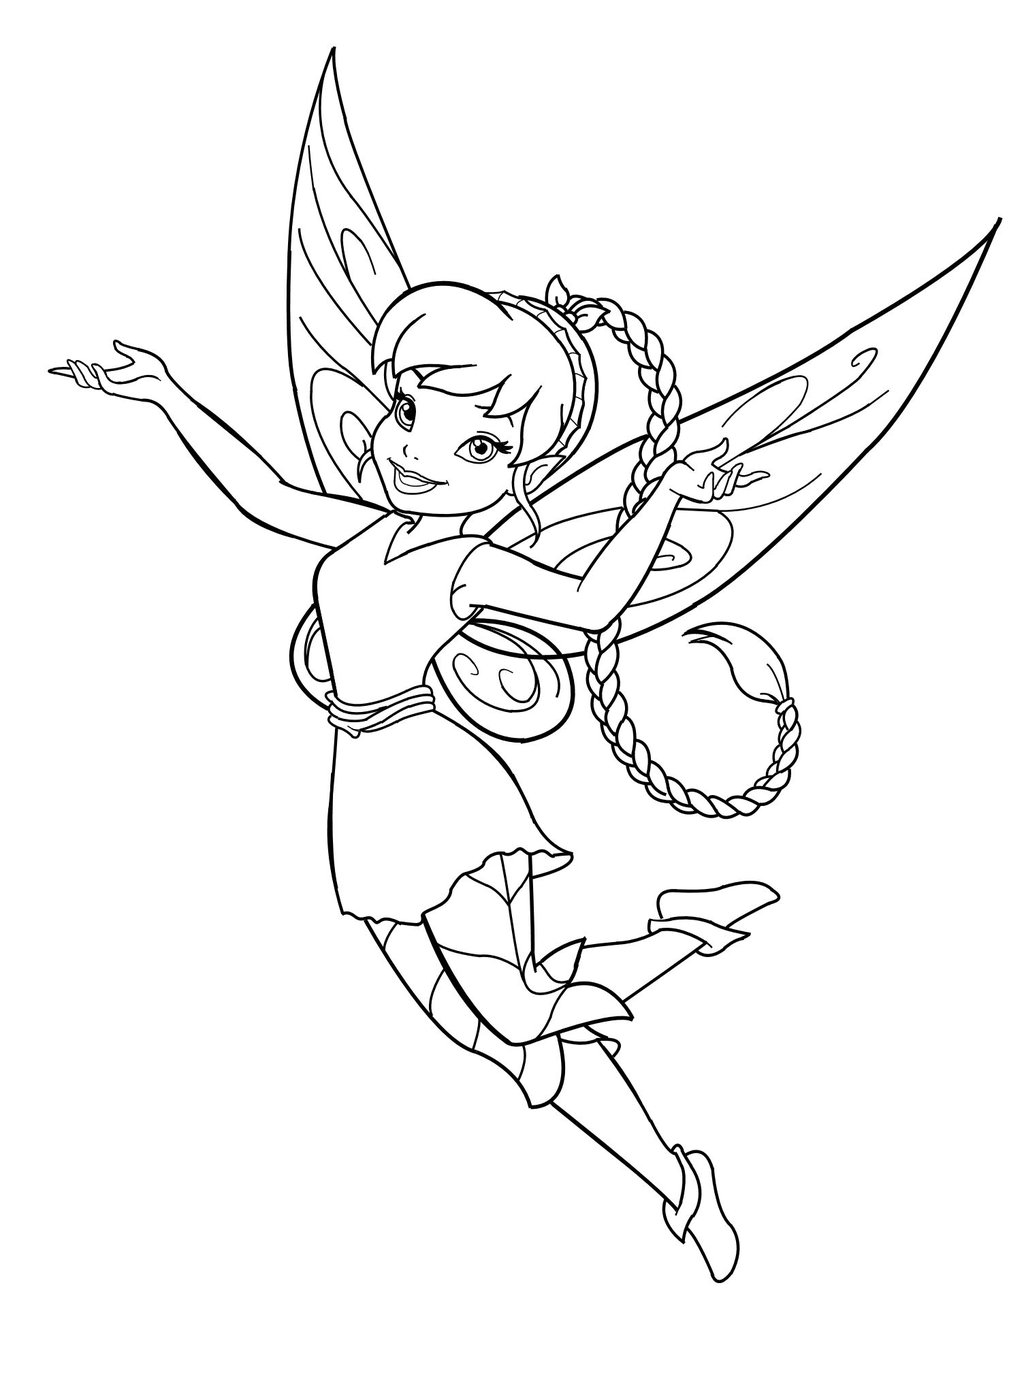 Free Printable Disney Fairies Coloring Pages For Kids